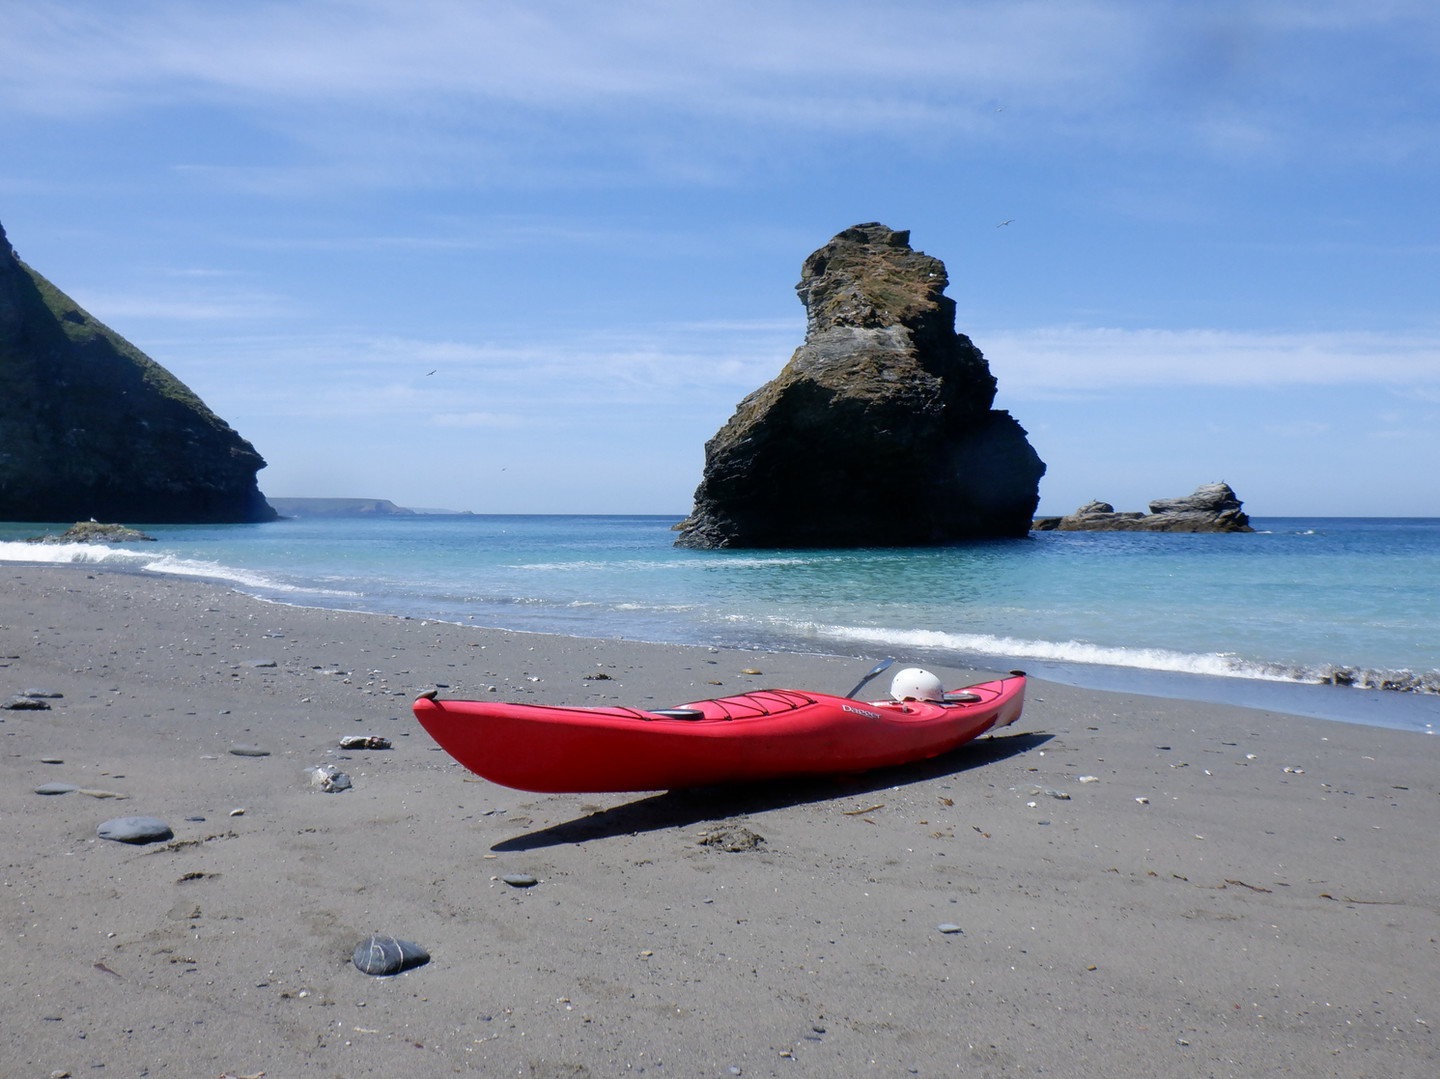 Around the corner from portreath boat on